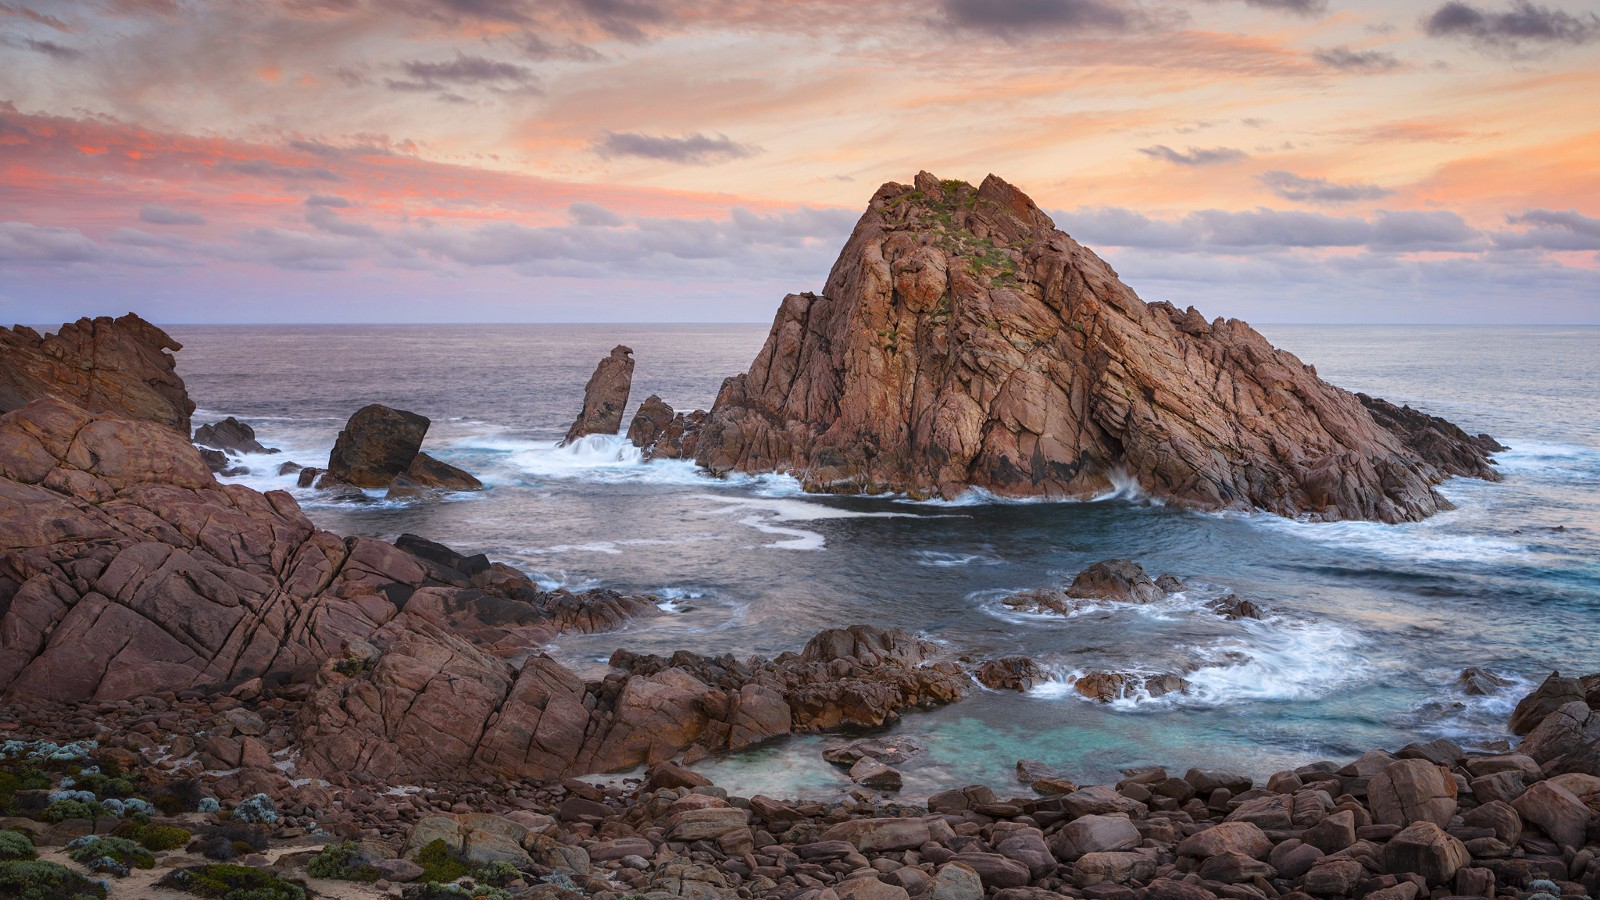 Sunrise at Sugarloaf Rock, near Dunsborough in Western Australia